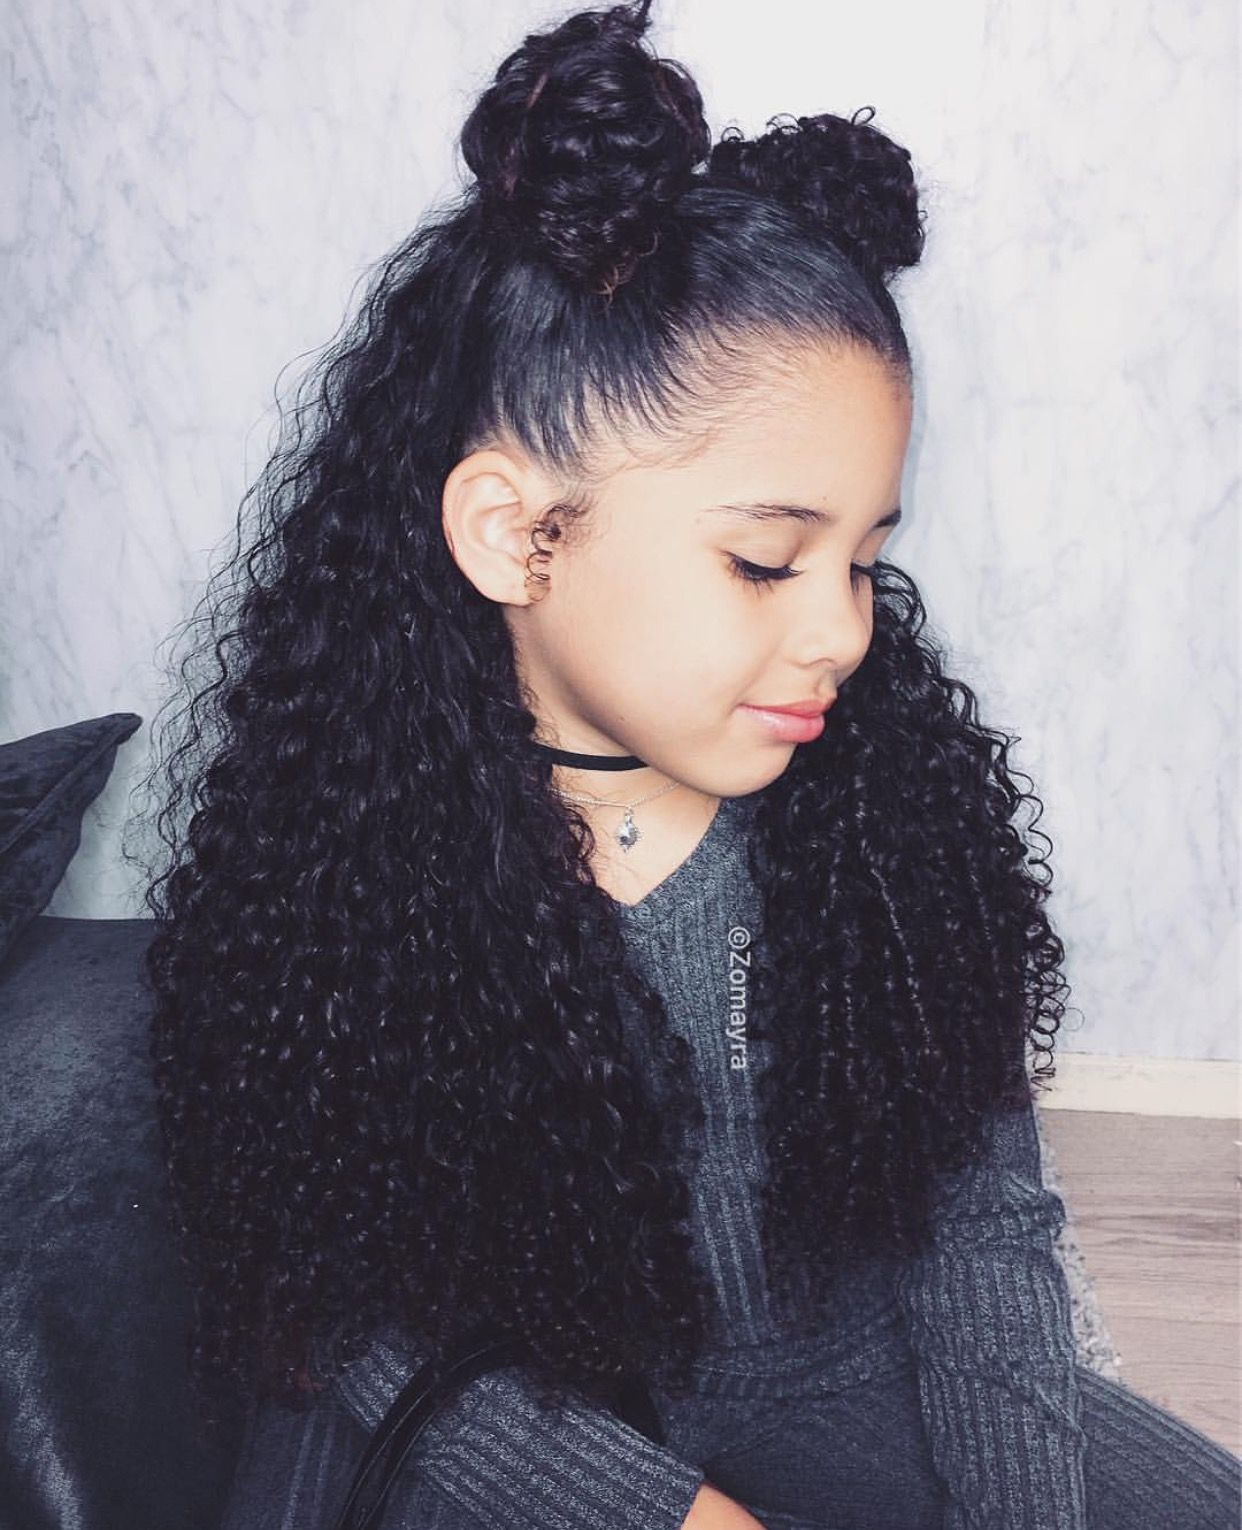 Pin By Khushibharne On Curly Hair Goals Mixed Curly Hair Mixed Girl Hairstyles Mixed Race Hairstyles